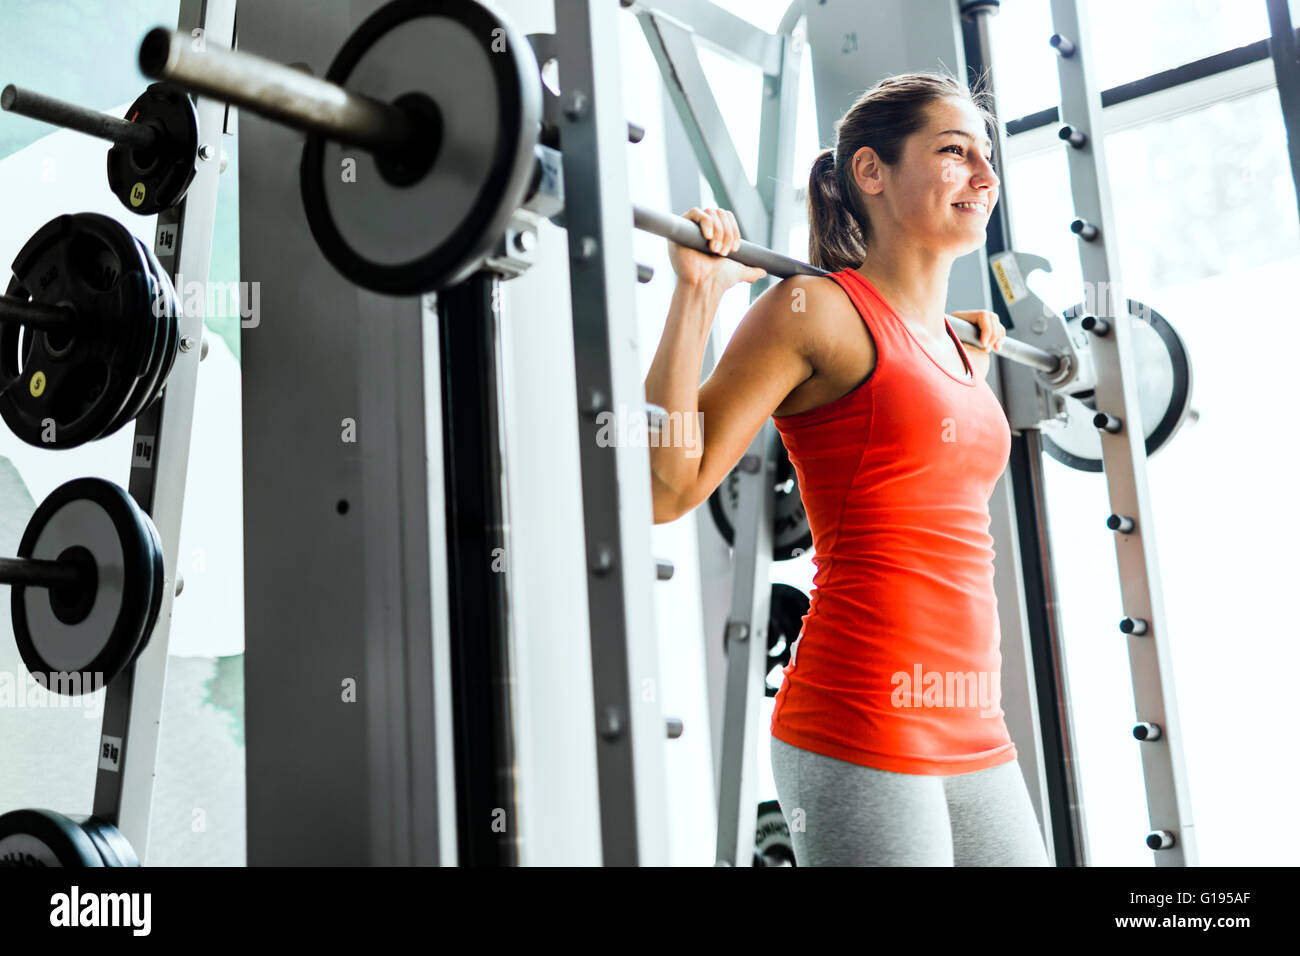 L'accent young Beautiful woman lifting weights in a gym Photo Stock